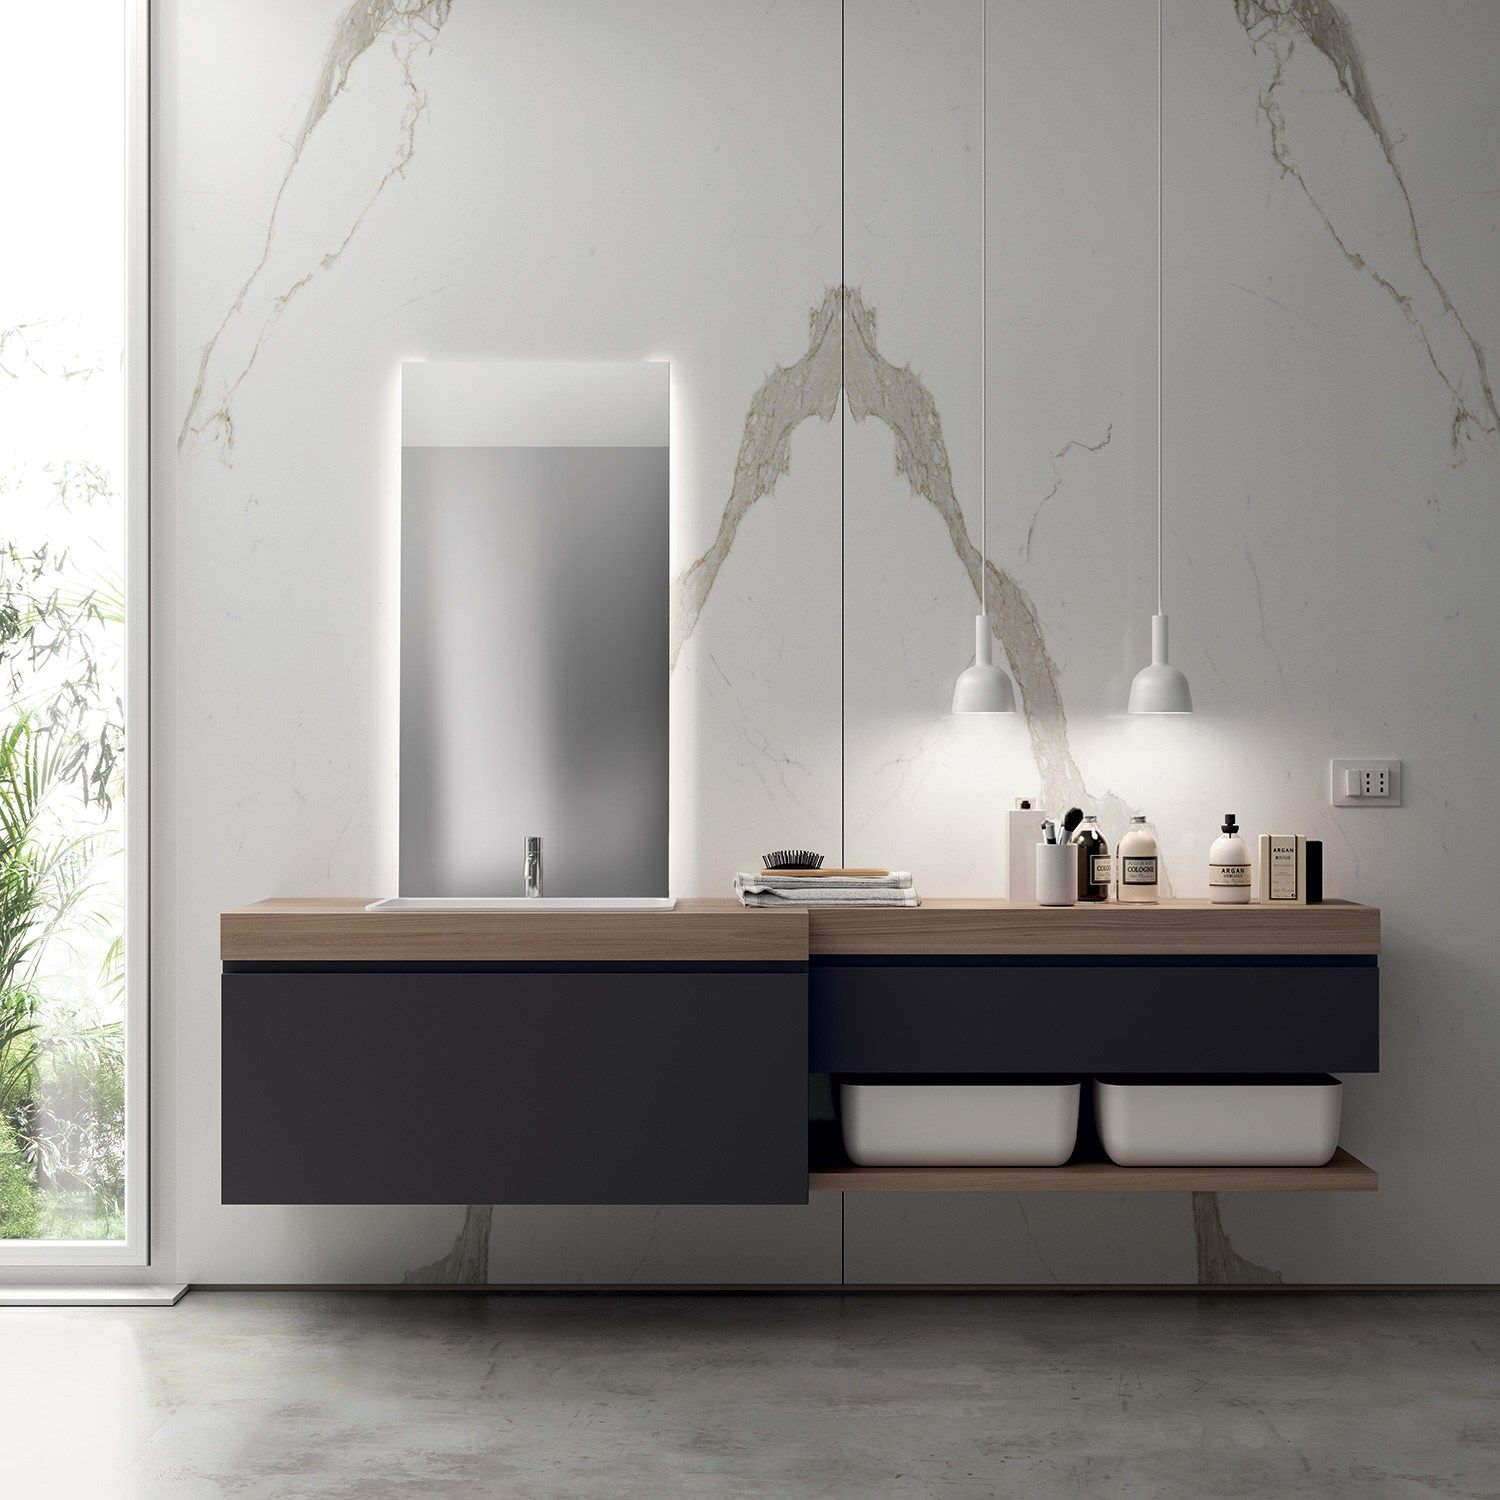 Bathroom Furniture Set Ki By Scavolini Bathrooms Design Nendo Bathroom Furniture Bathroom Lighting Design Bathroom Design